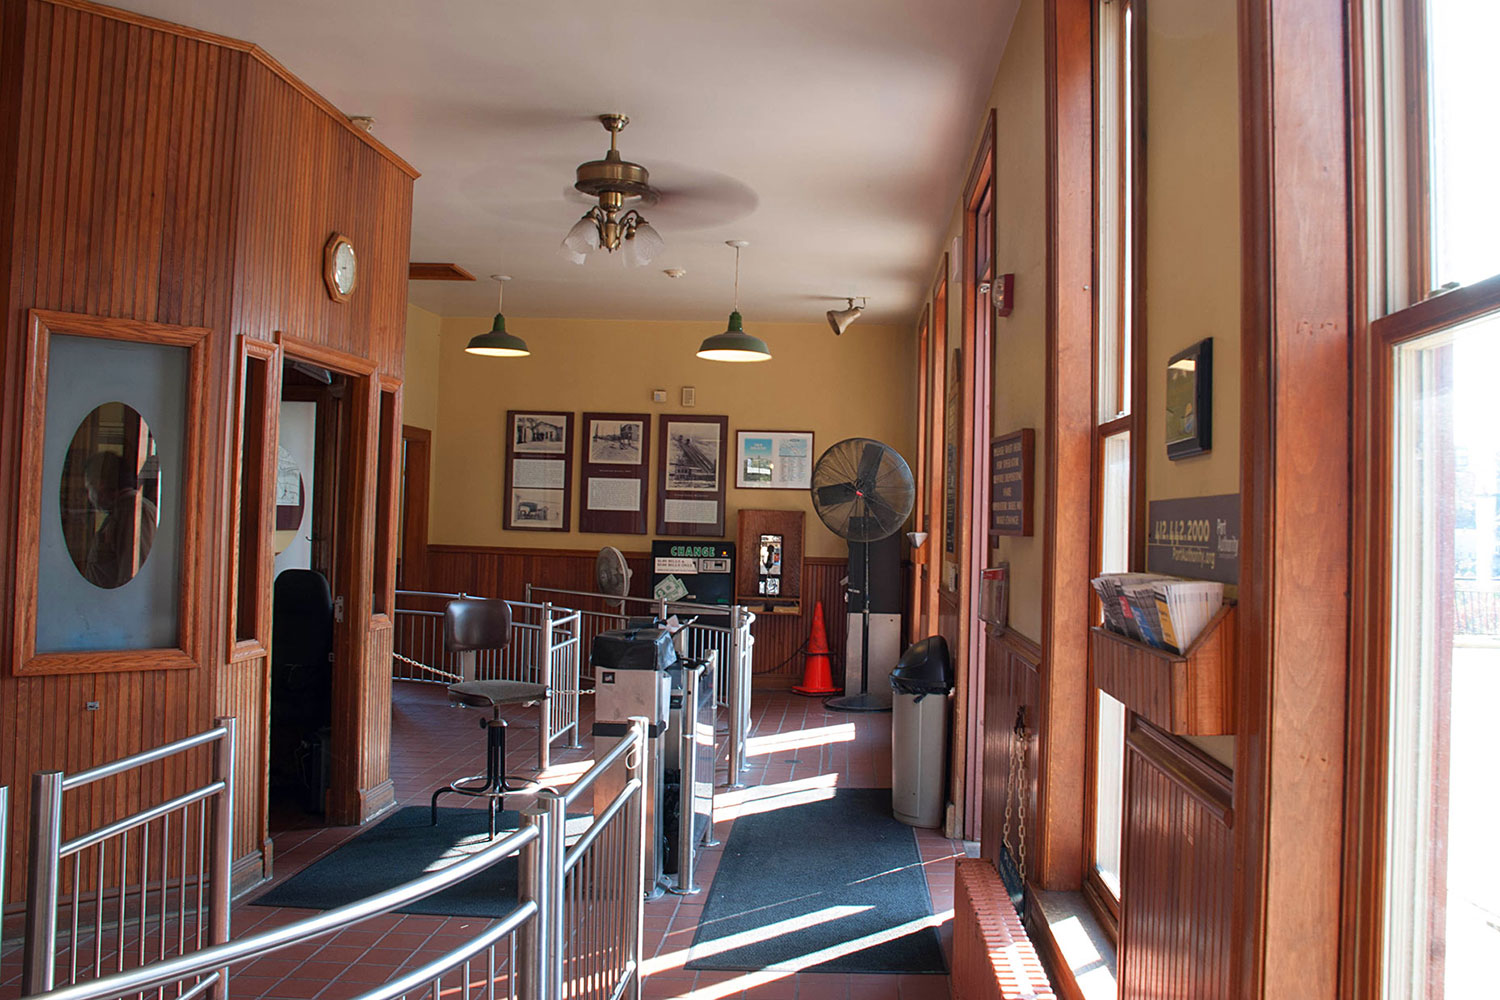 The Lobby of the Upper Station of the Mon Incline